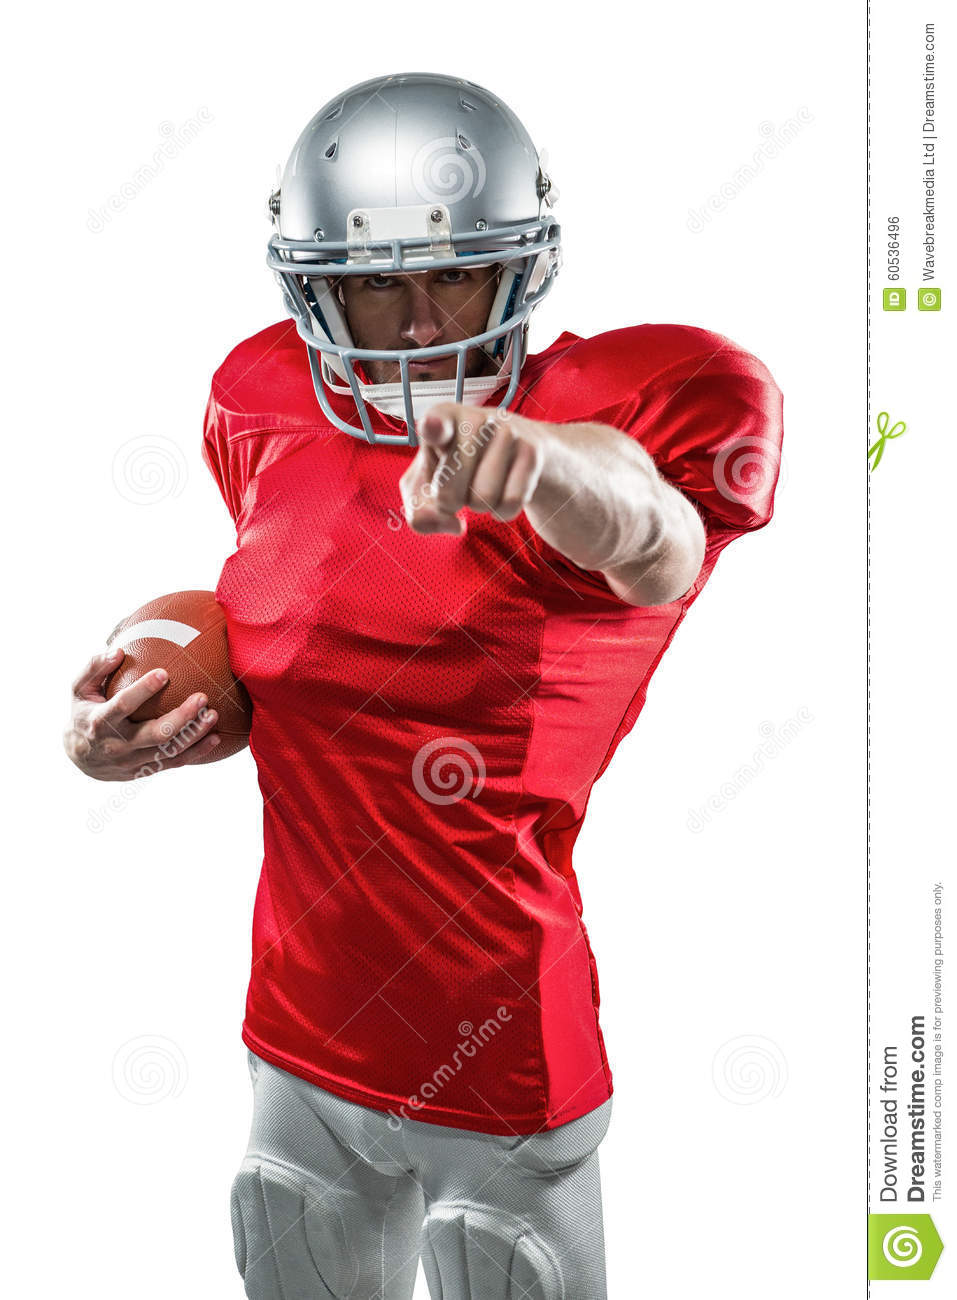 portrait american football player in red jersey pointing stock